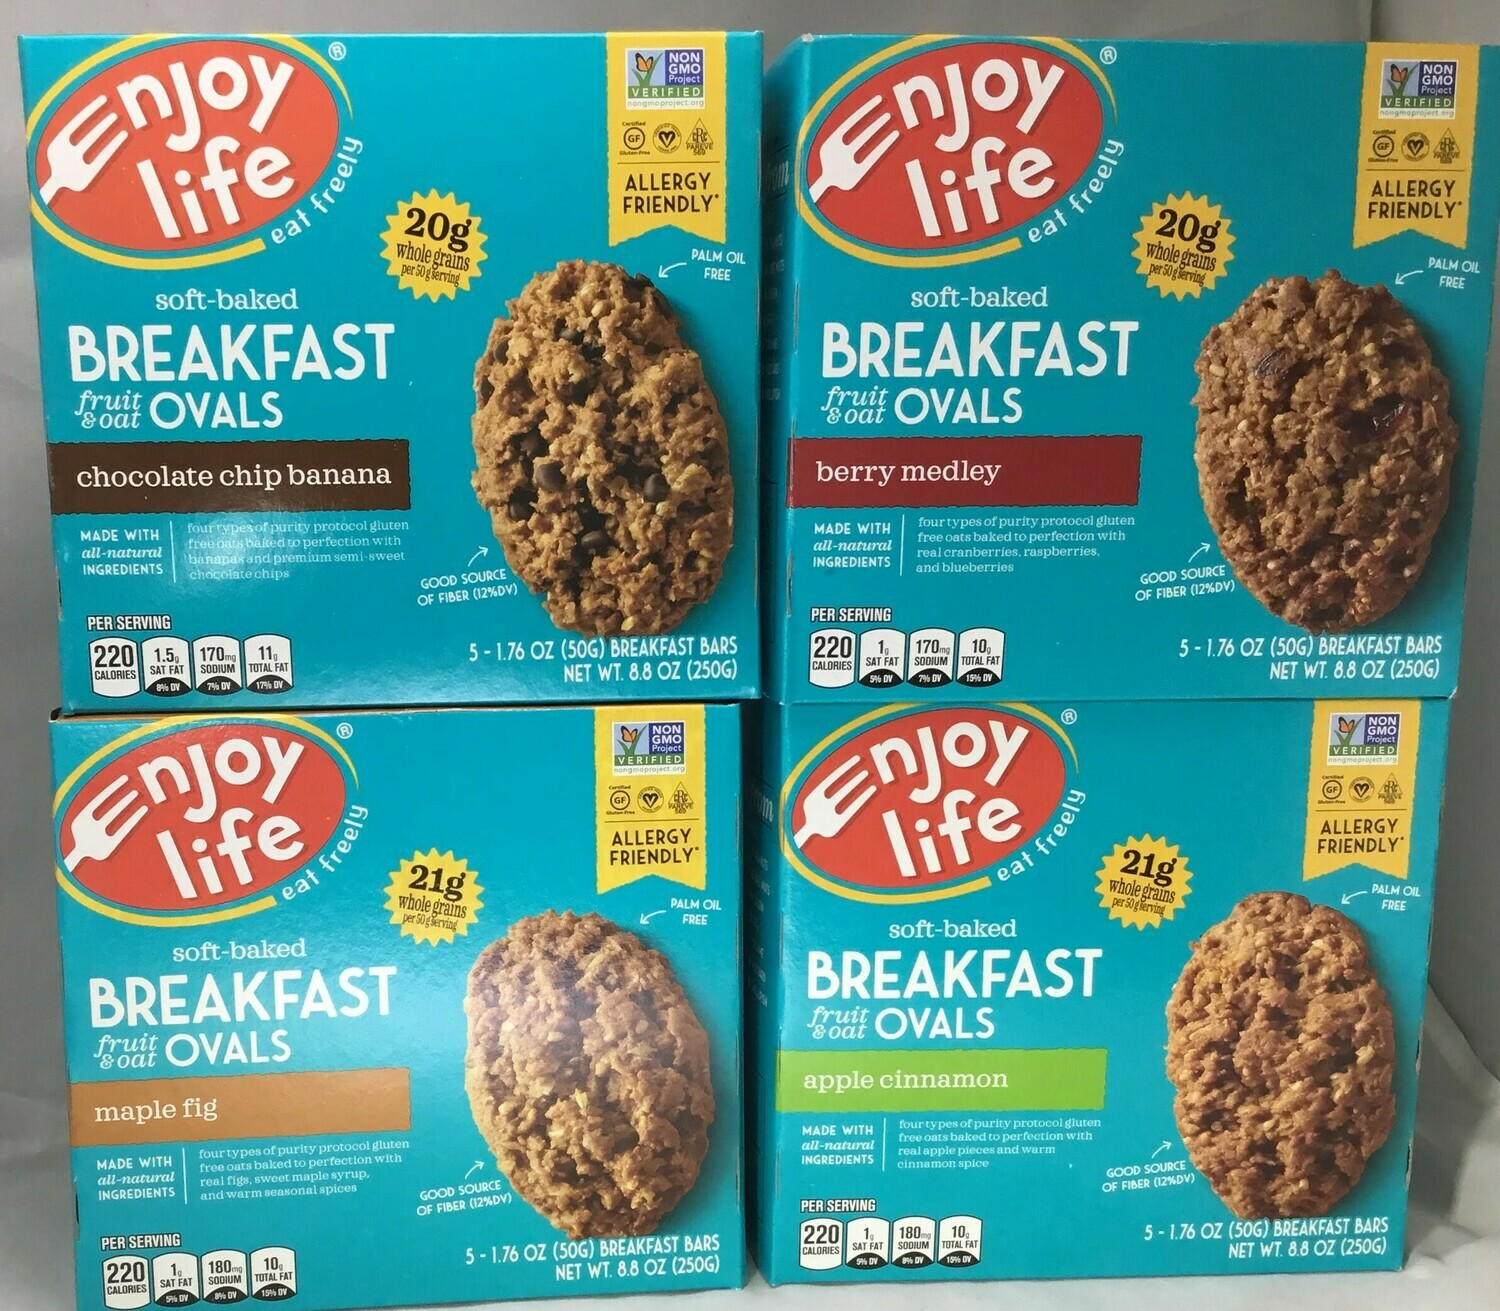 Enjoy Life Breakfast bars